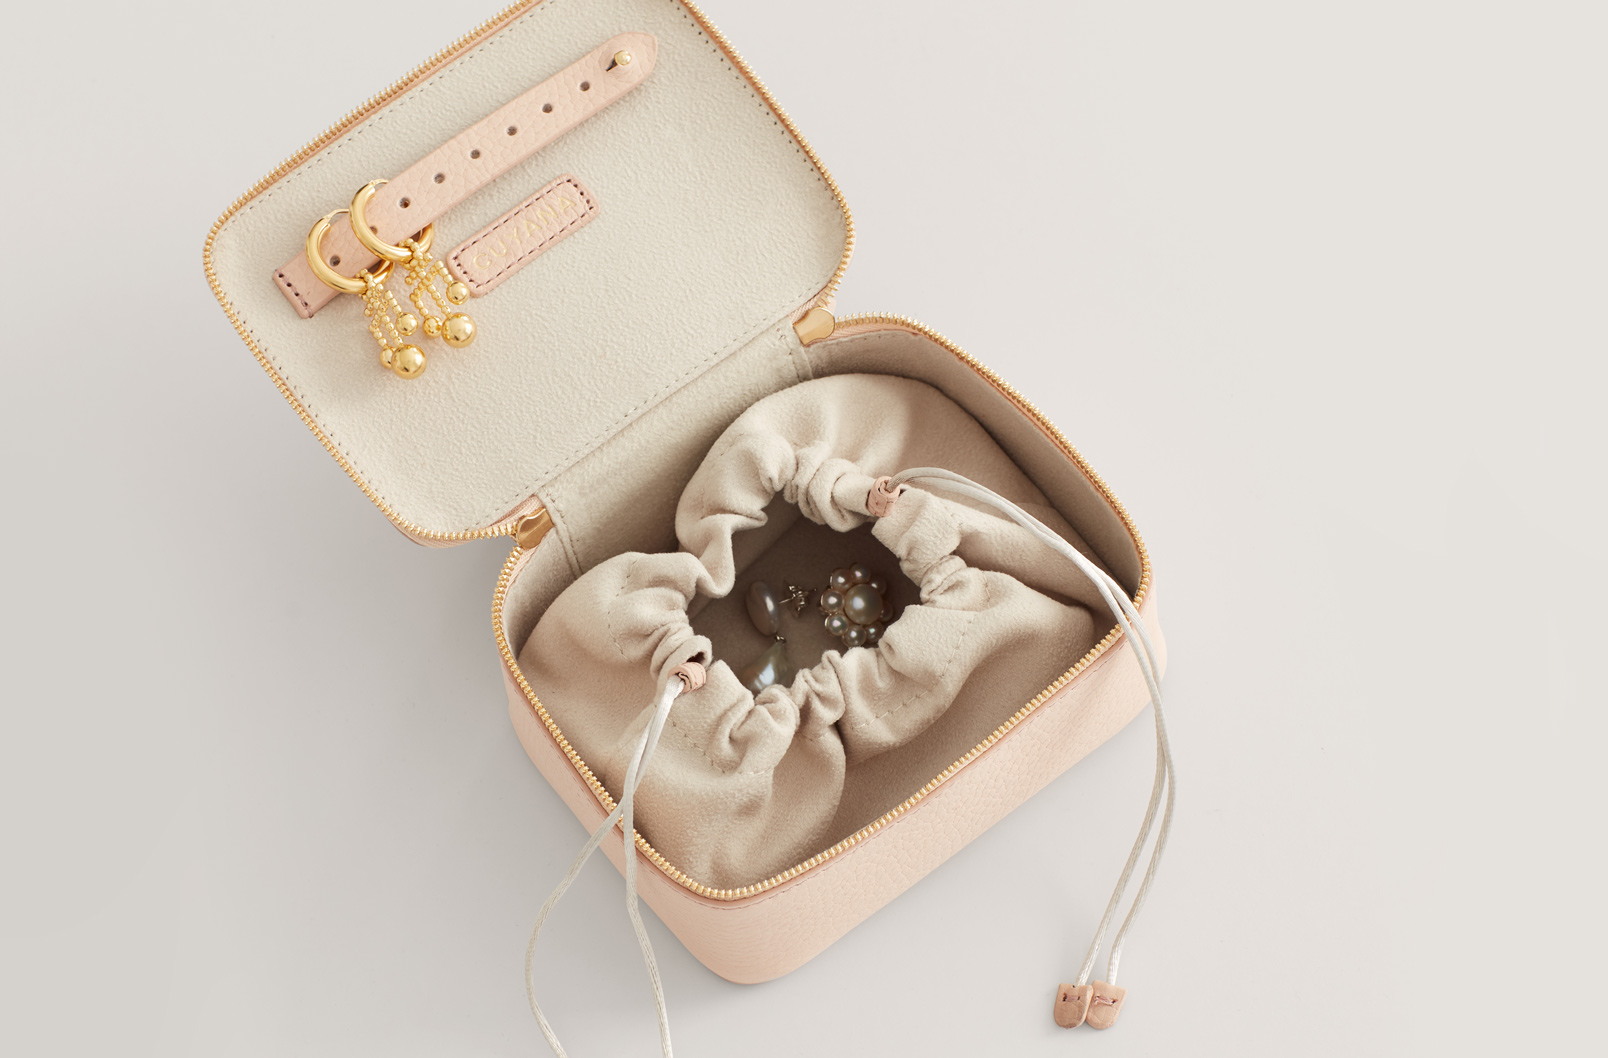 Cuyana Mini Jewelry Case interior with cinched felted pouch